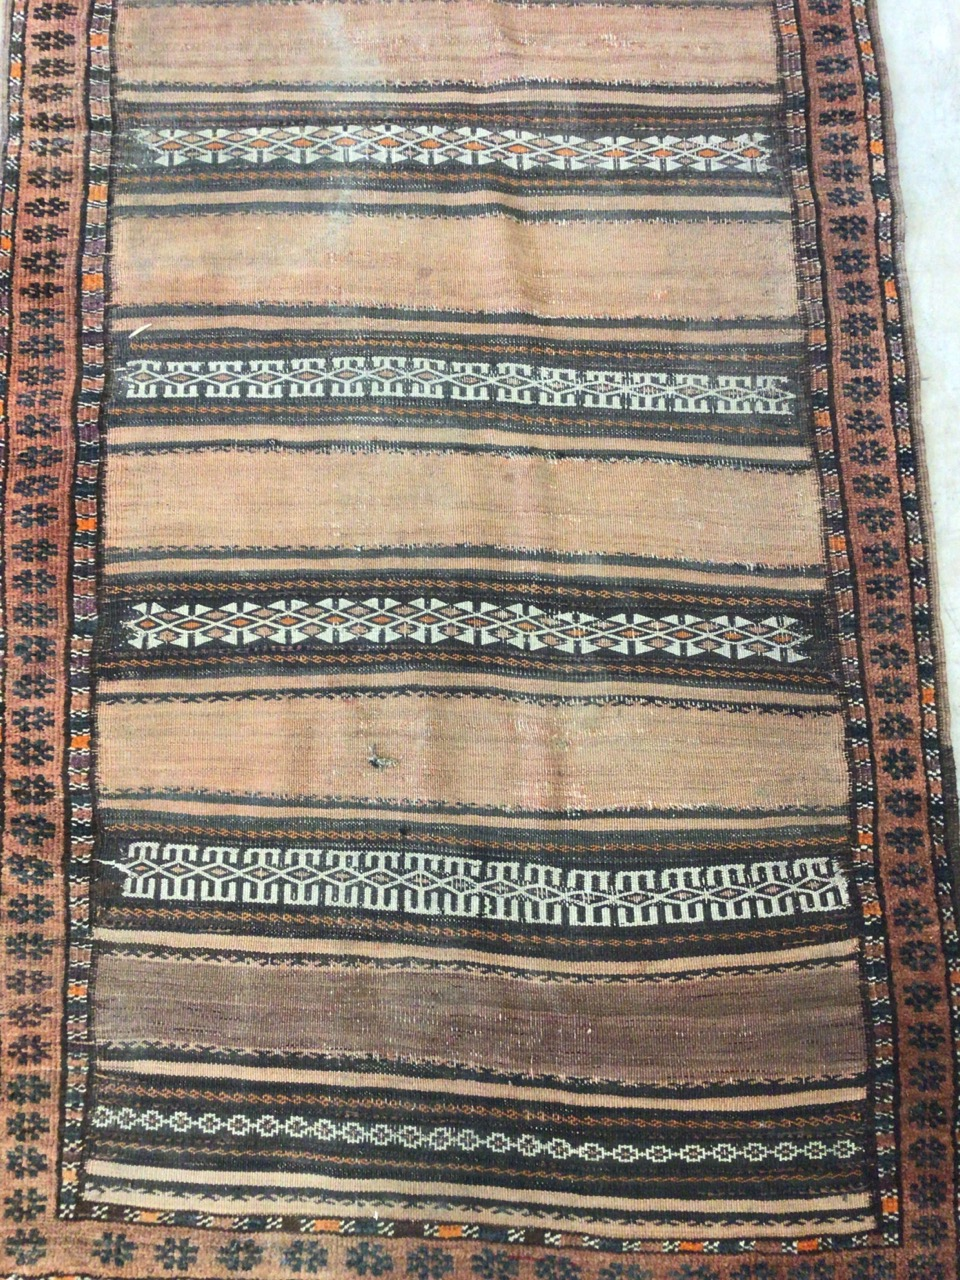 An antique eastern runner with Aztec influence. W:290cm x H:105cm - Image 2 of 4